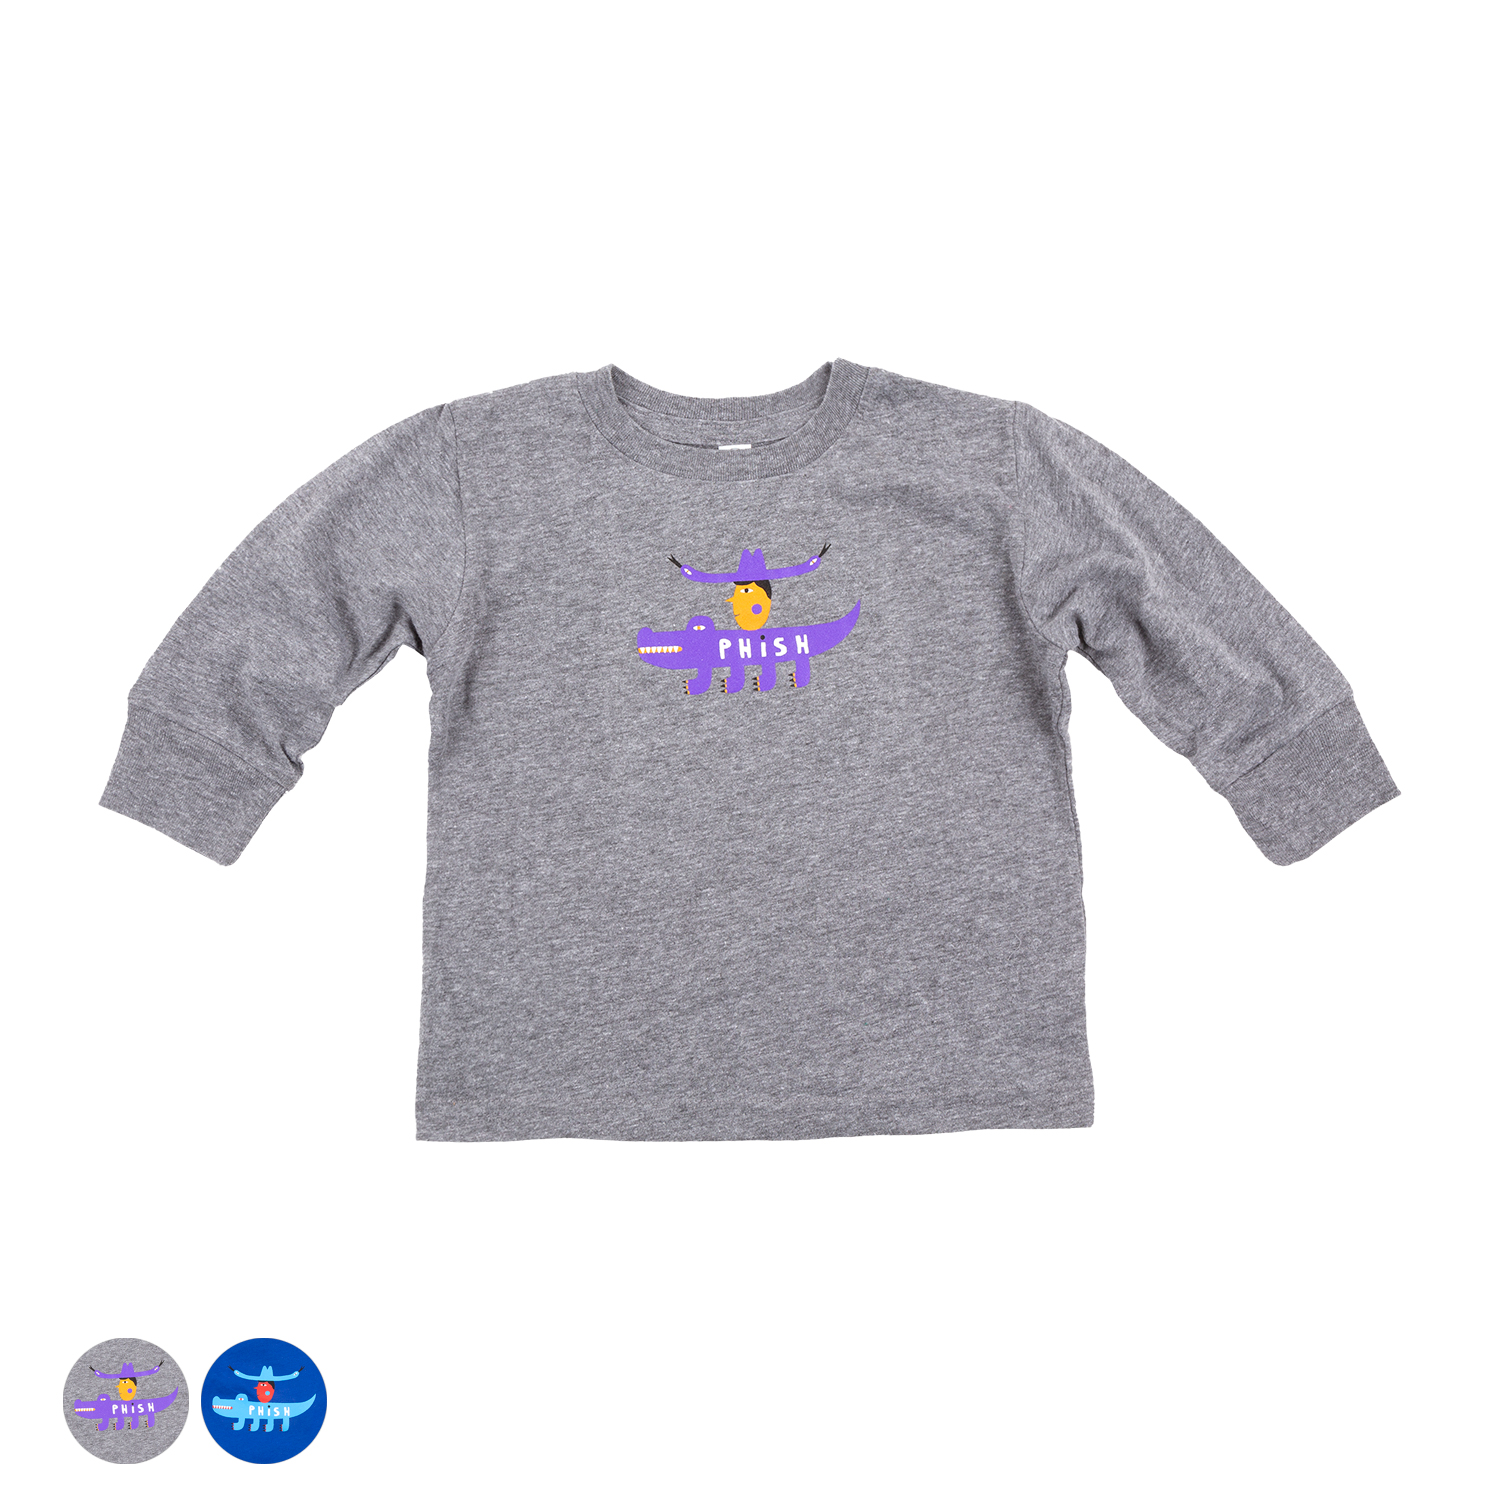 Kids Cowboy Gator Long Sleeve Tee on White